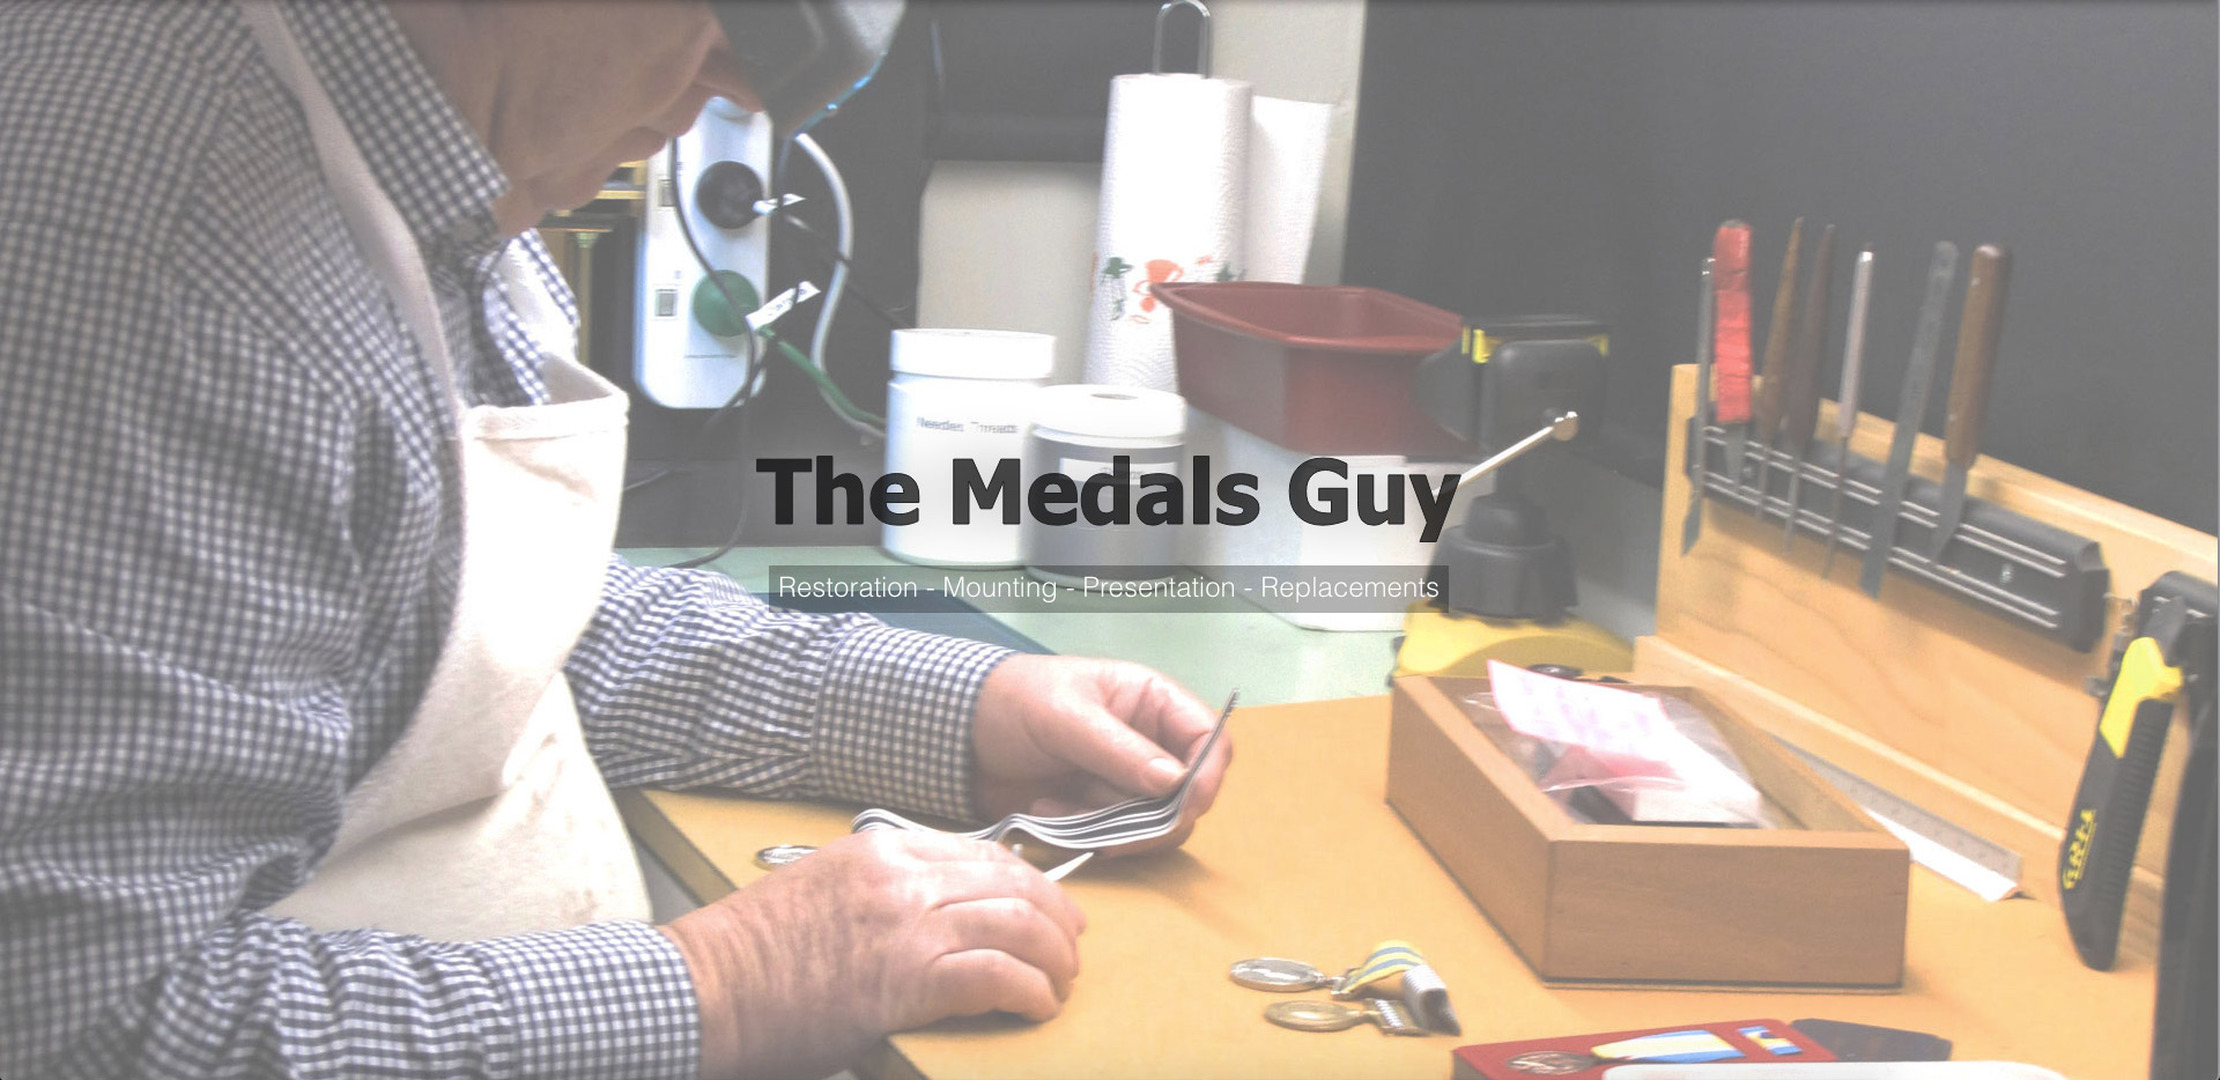 The Medals Guy-image-1